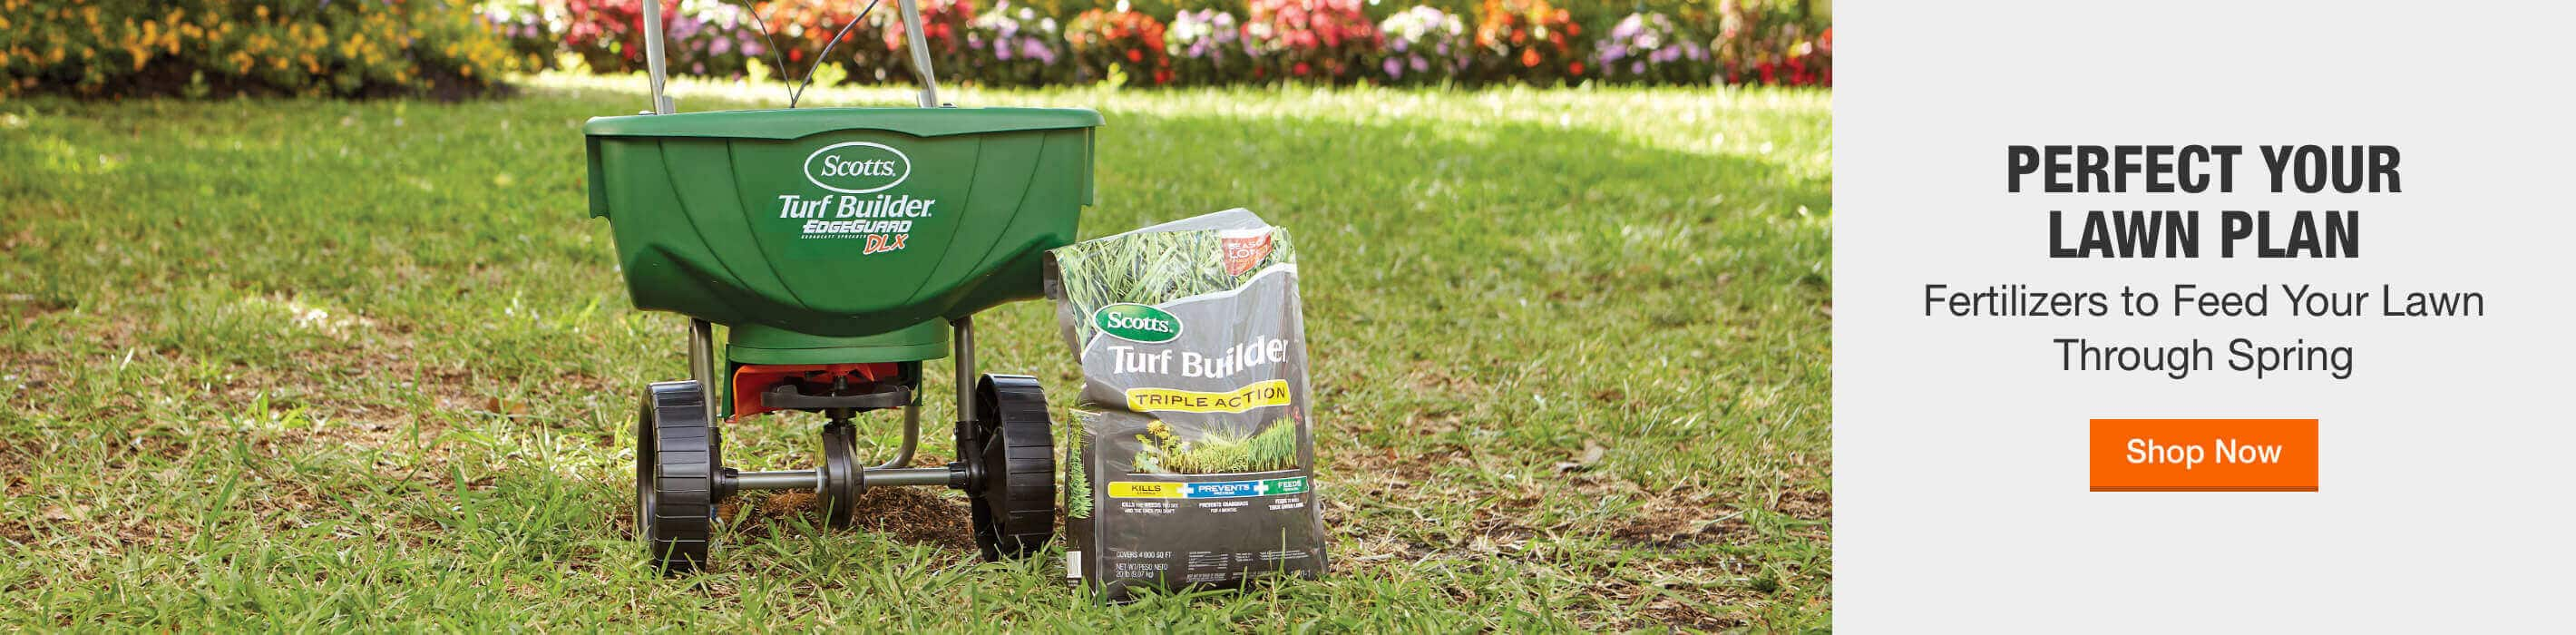 Perfect Your Lawn Plan - Fertilizers to Feed Your Lawn Through Spring. Shop Now